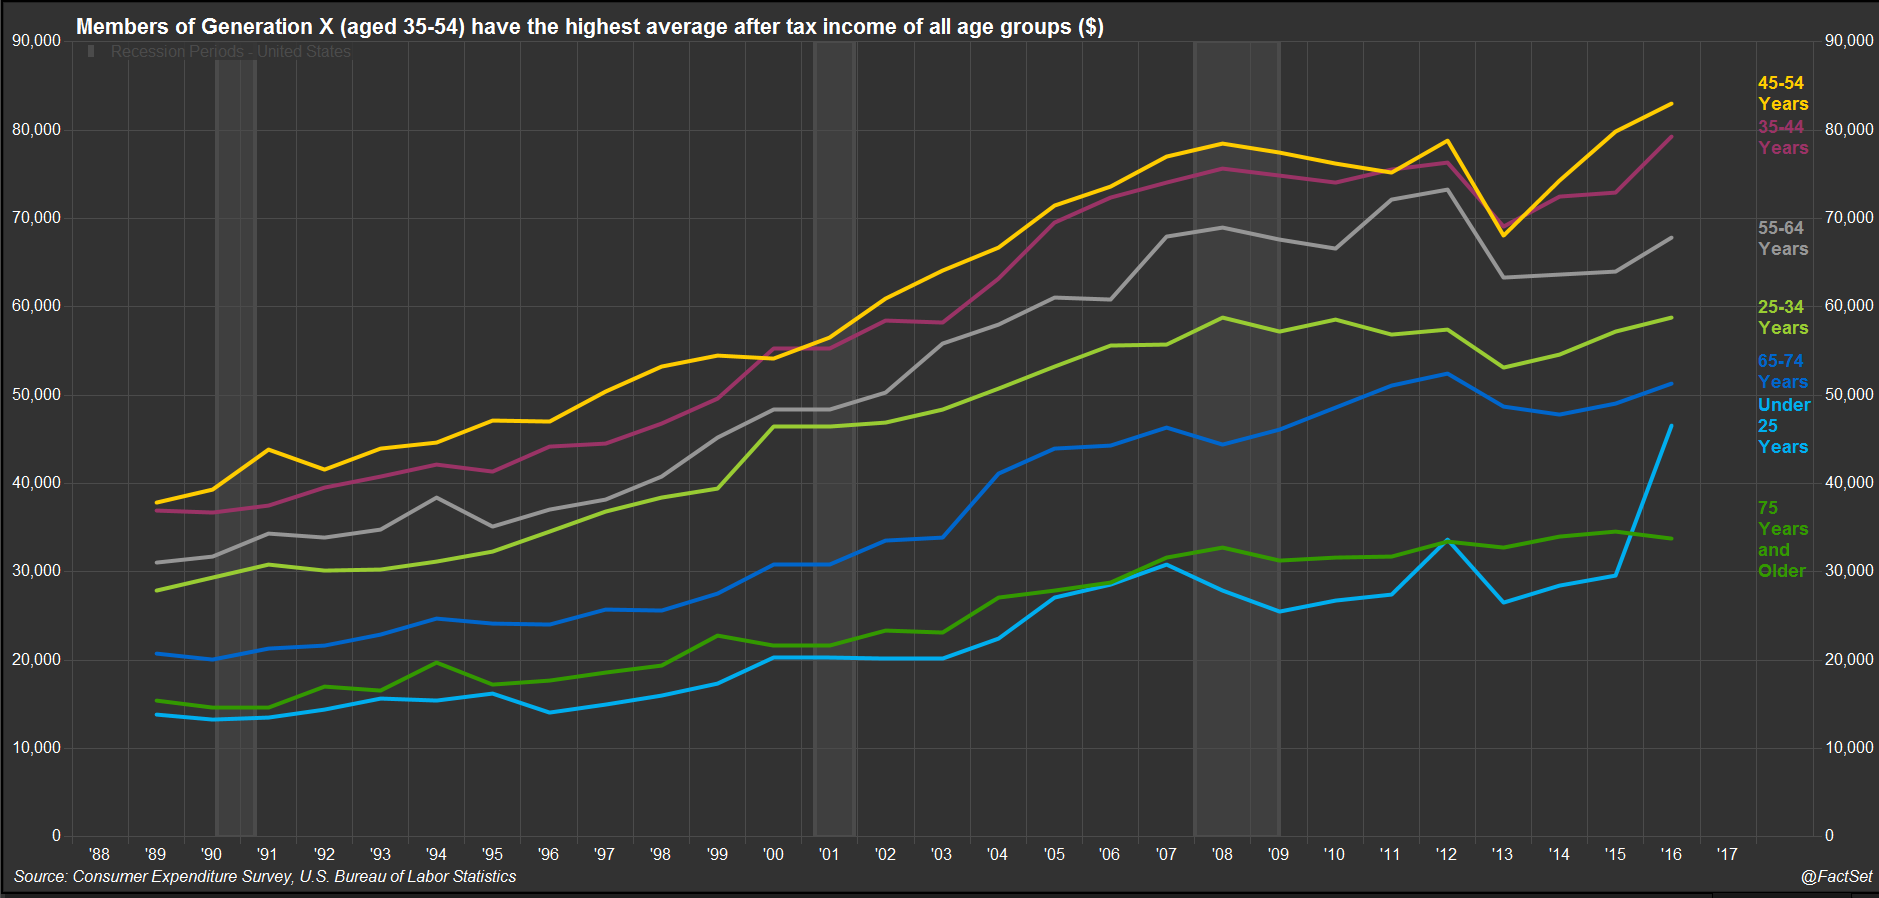 Americans in the 35 to 44 and 45 to 54 age groups had the highest average after tax income of all age groups;